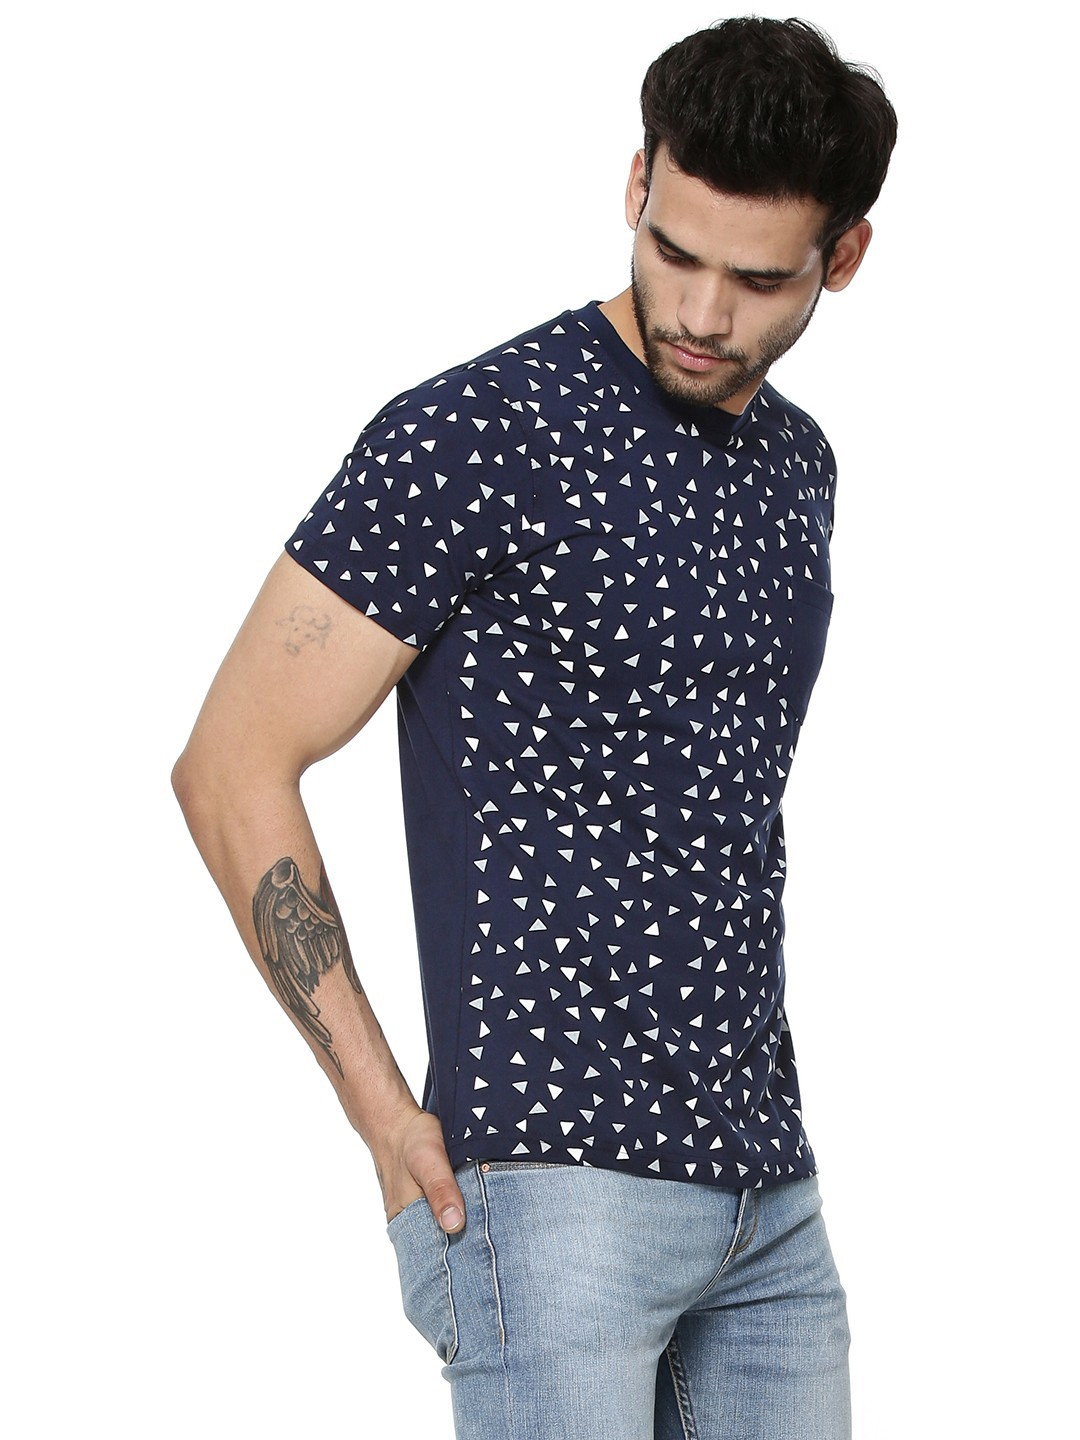 Buy blotch all over printed t shirt with patch pocket for for Online printed t shirts